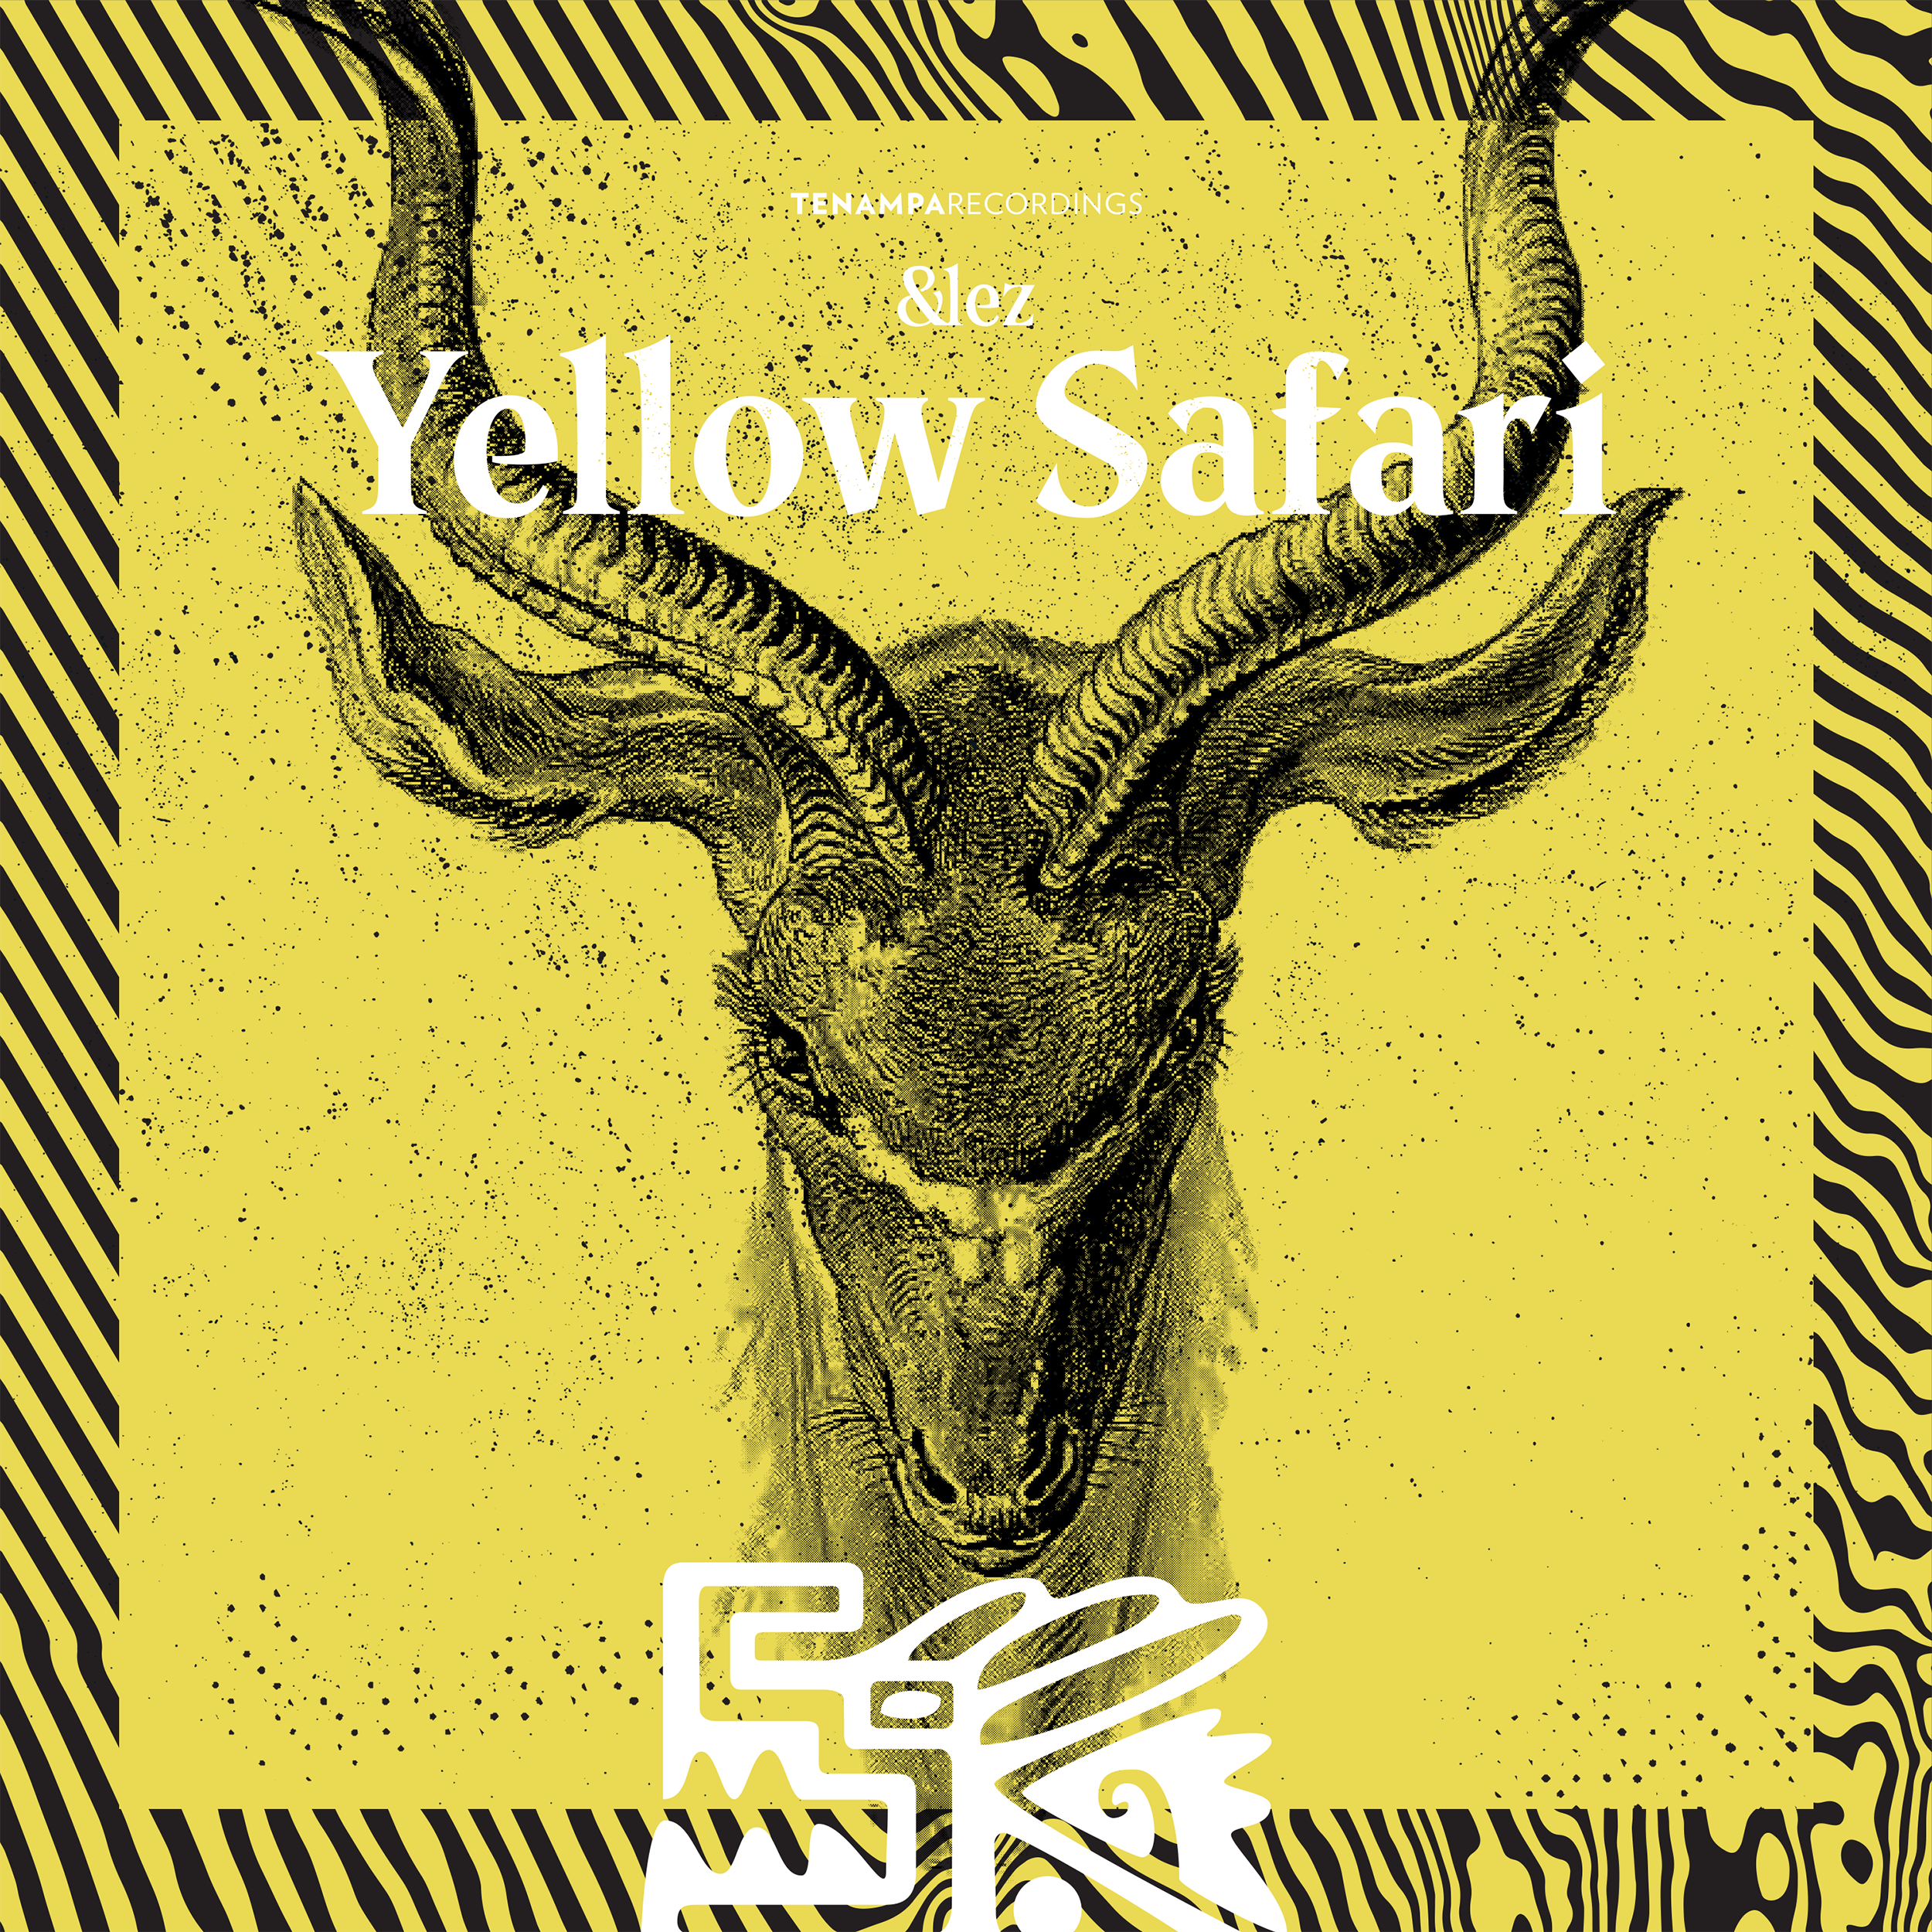 Yellow Safari Album Artwork